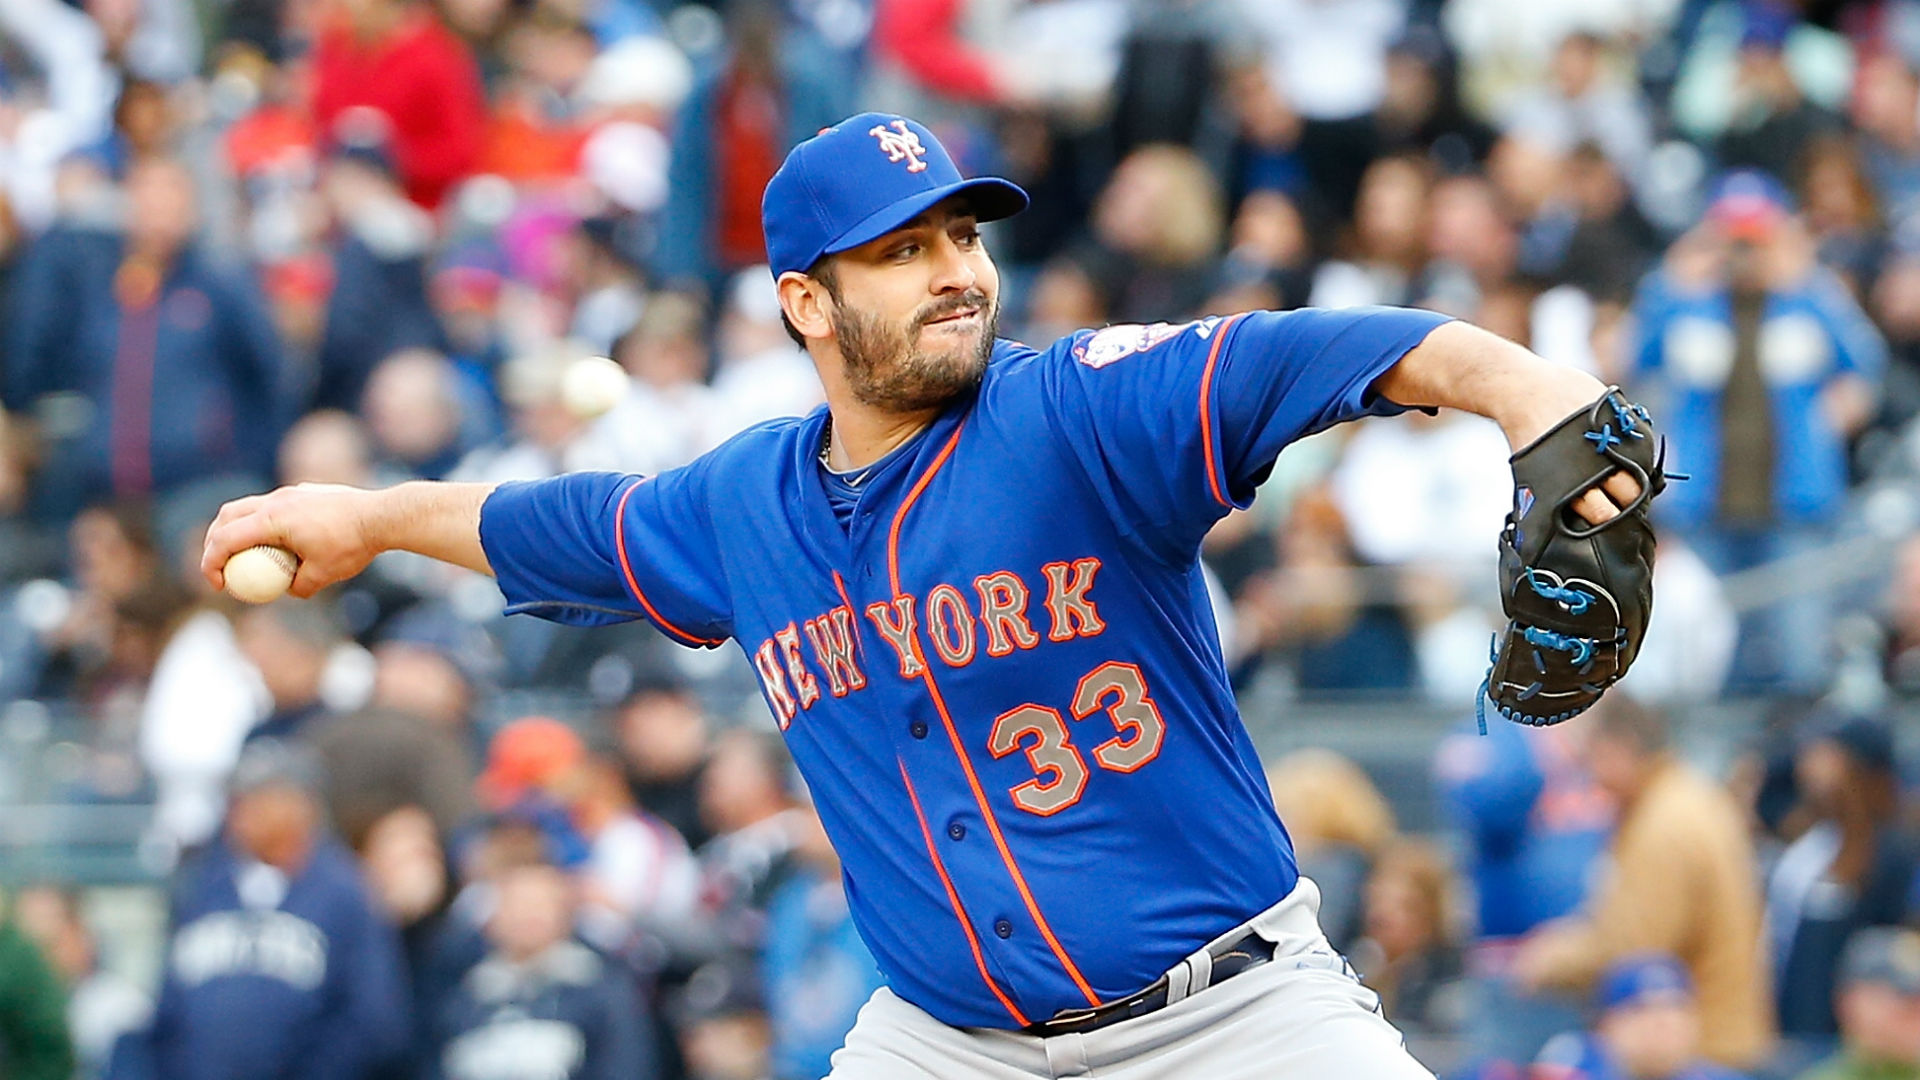 MLB Nightly 9: Matt Harvey, Mets take down Yankees